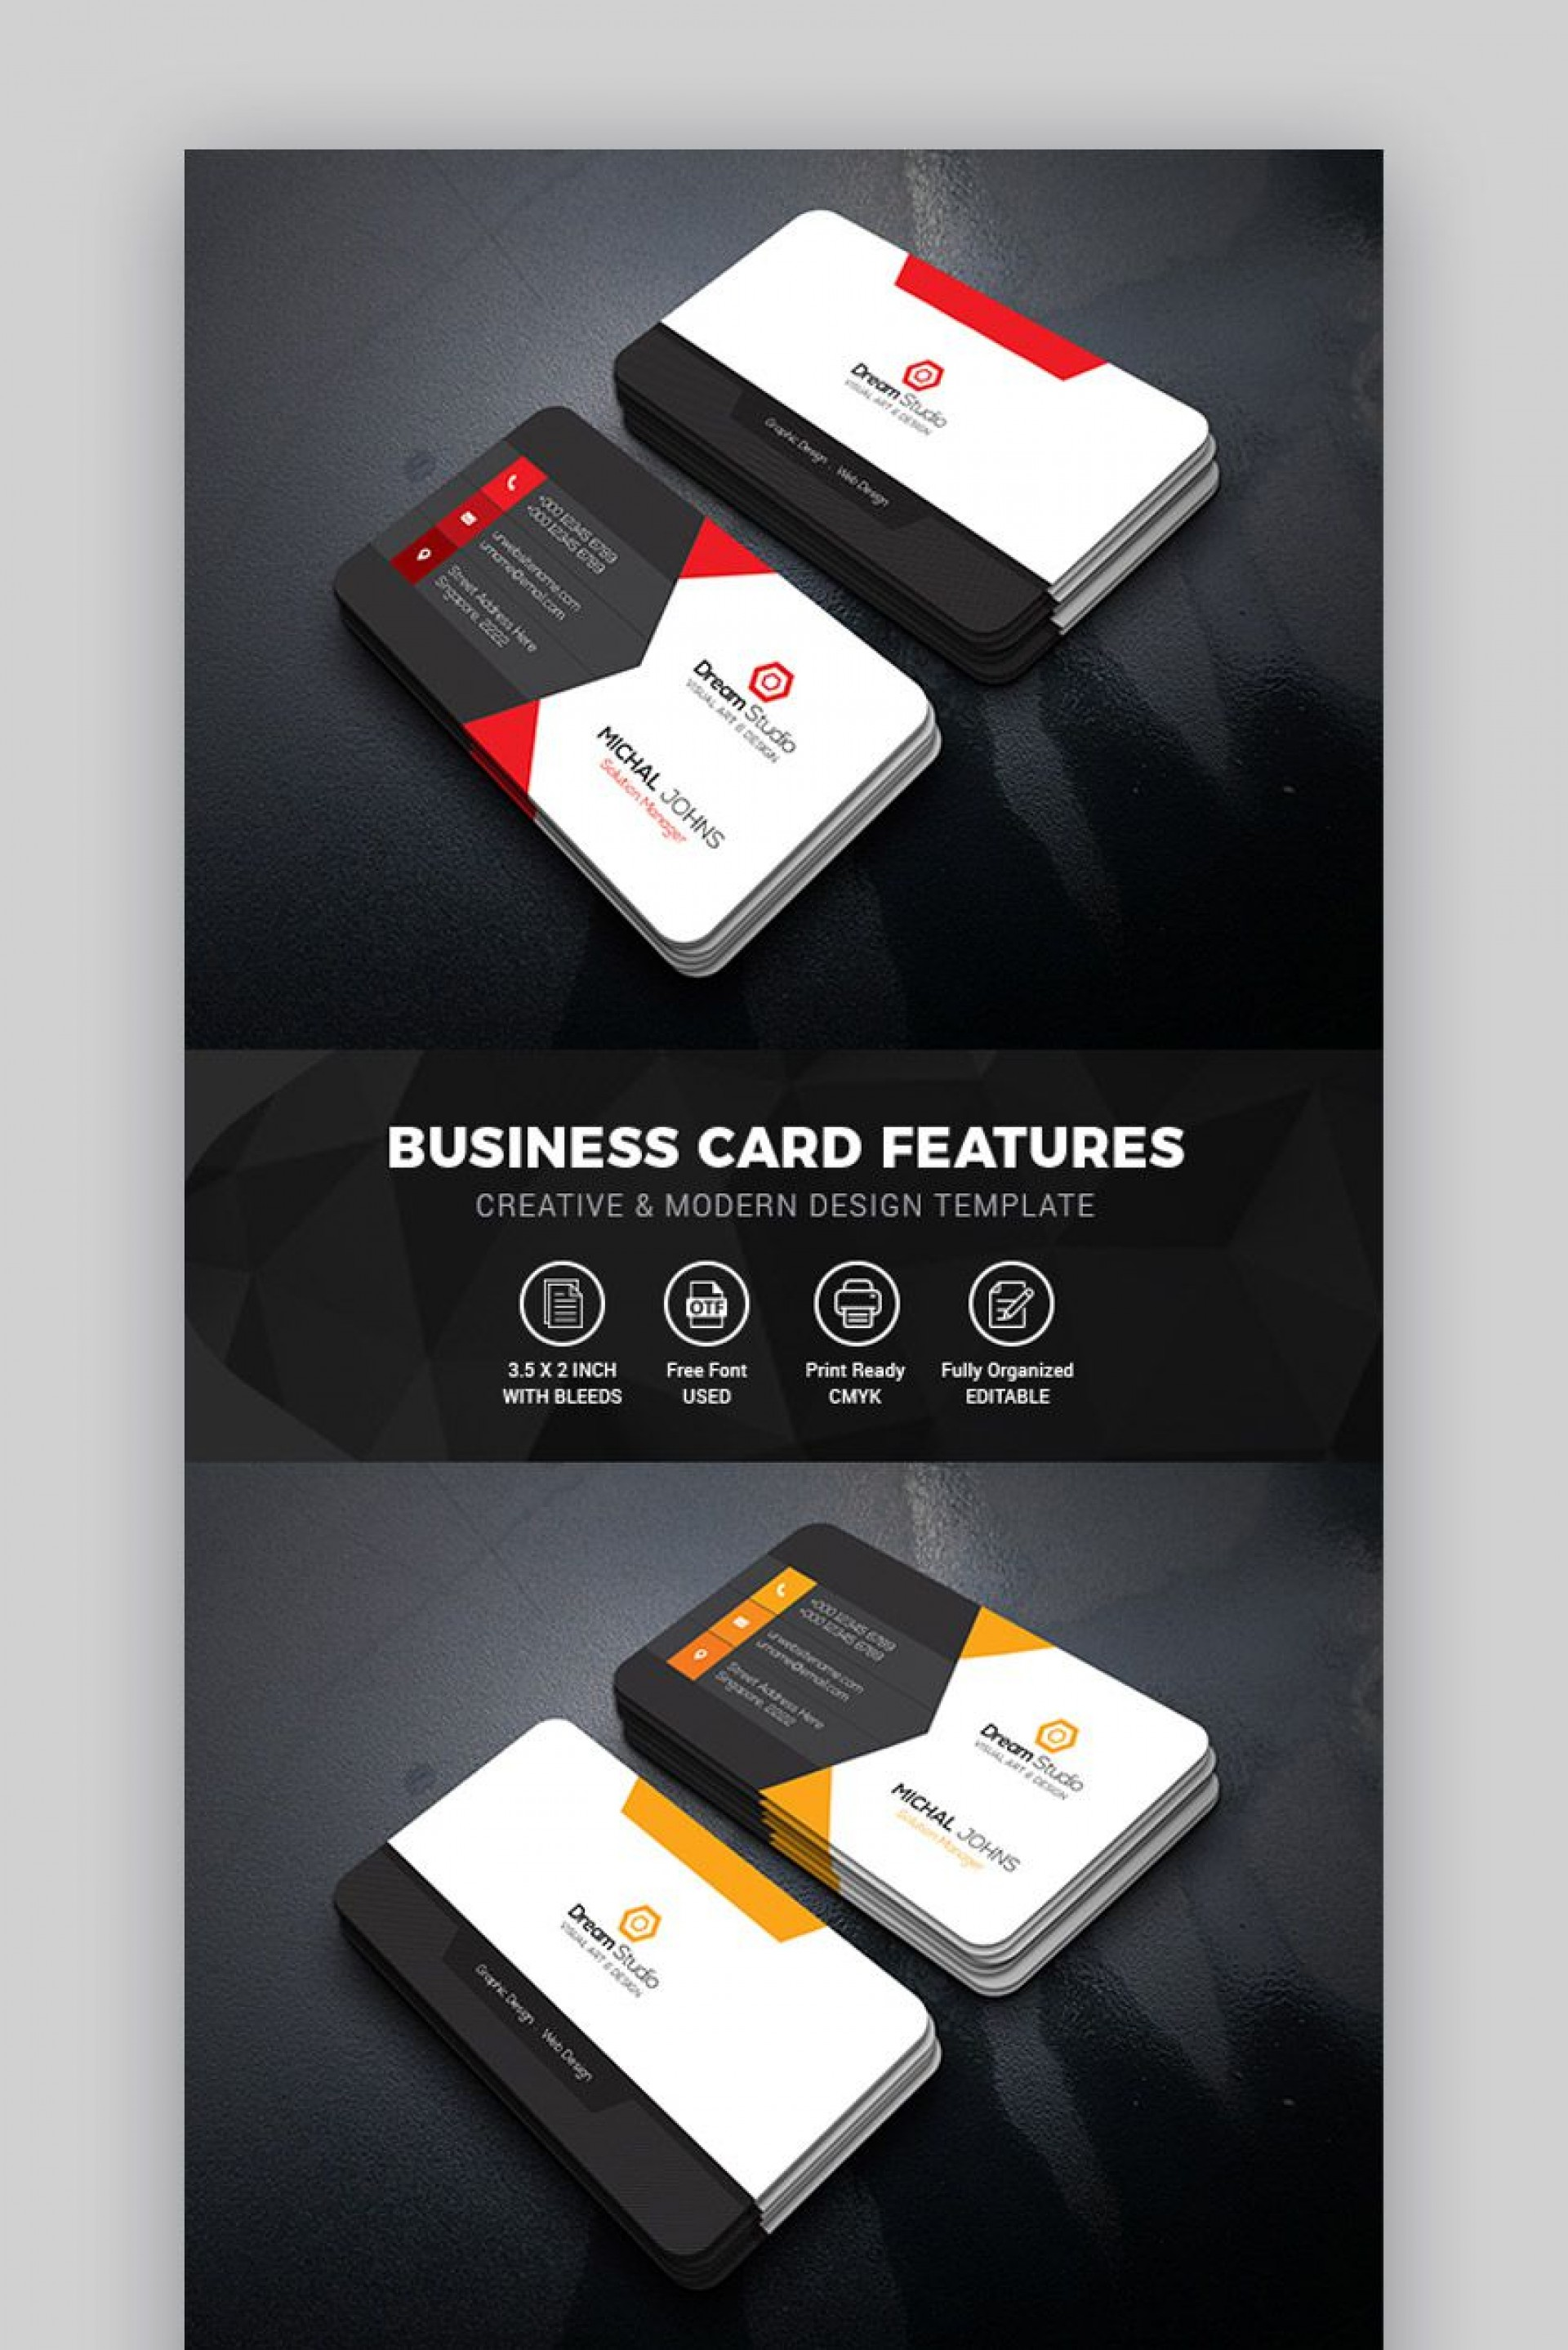 010 Awesome Blank Busines Card Template Psd Free Download Idea  Photoshop1920